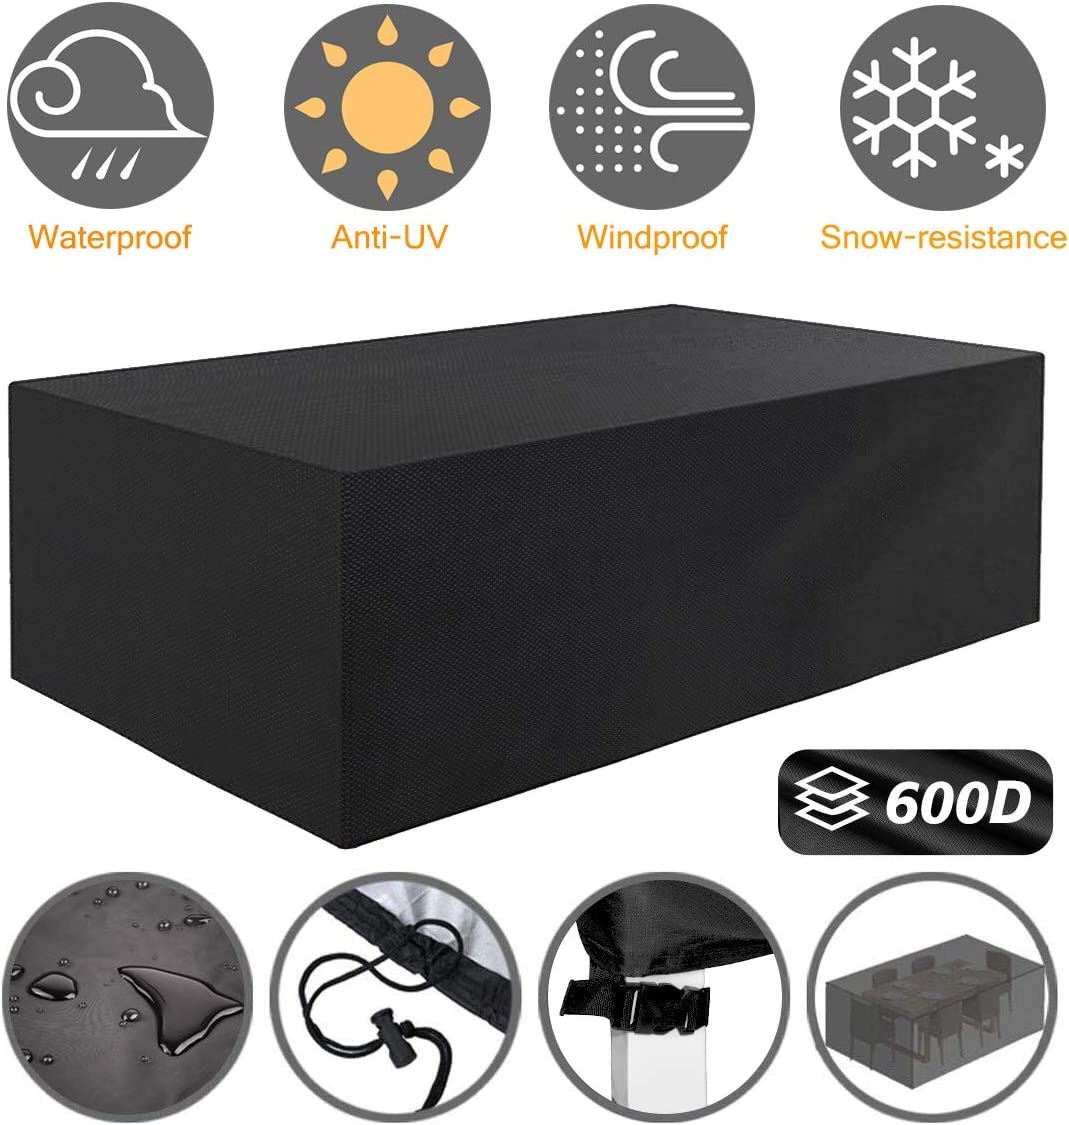 Tvird Patio Furniture Covers,Outdoor Furniture Covers Waterproof, 600D Heavy Duty Oxford Fabric,Table and Chair Set Covers Windproof Dust Proof Protective 242 x 162 x 100 cm Black